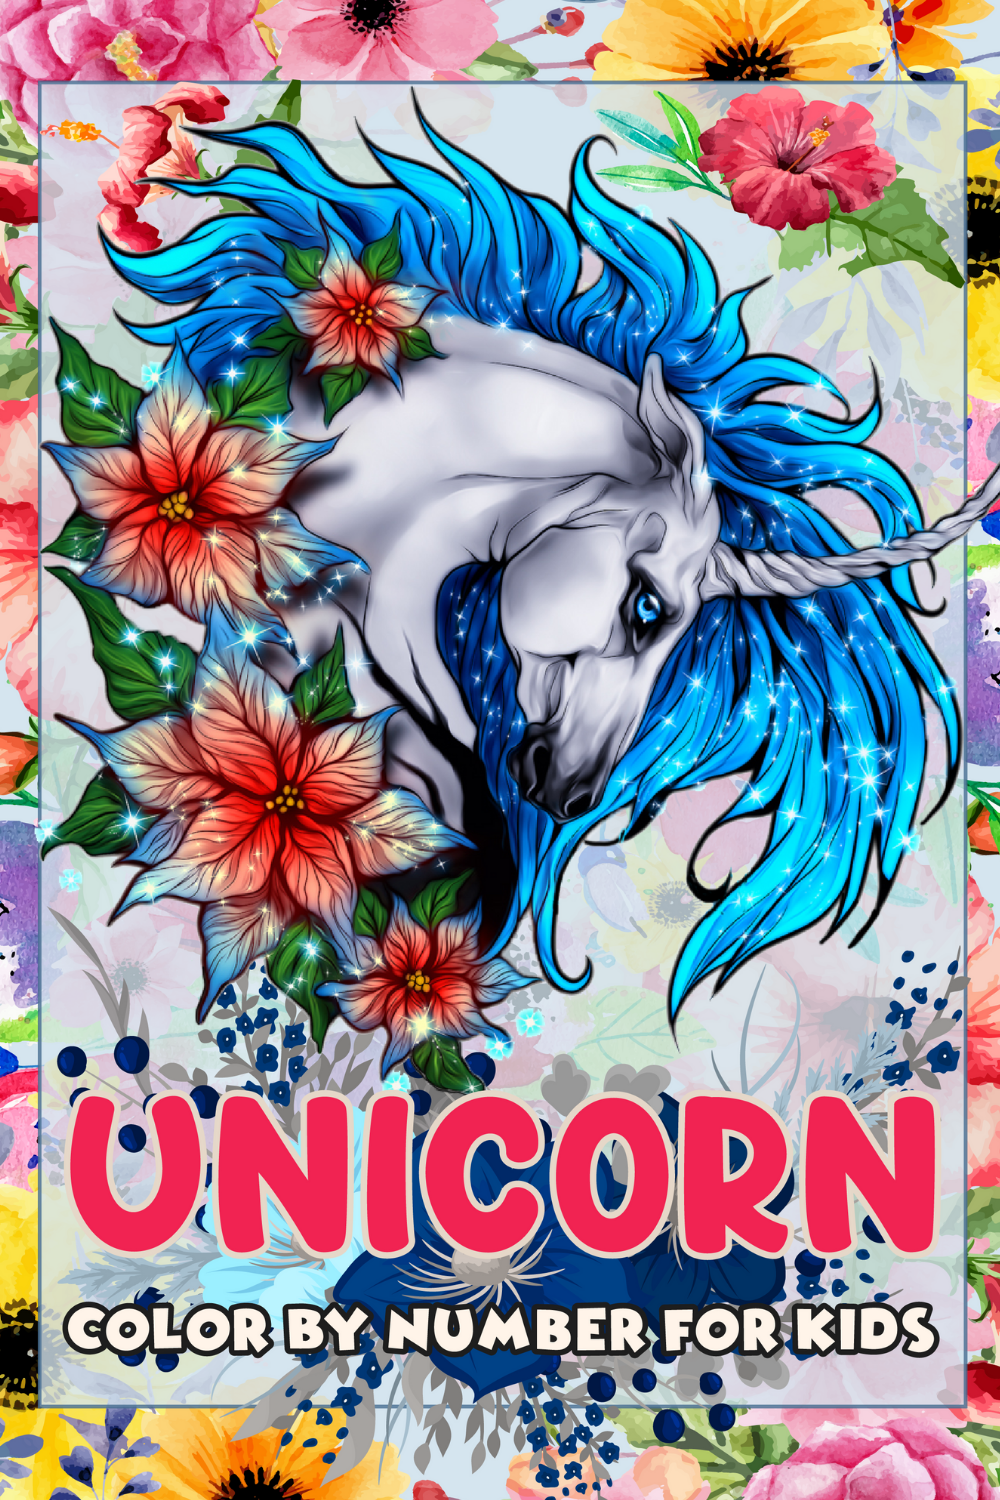 Unicorn Color By Number For Kids Unicorn Coloring Book For Girls Coloring Books Unicorn Coloring Pages Book Girl